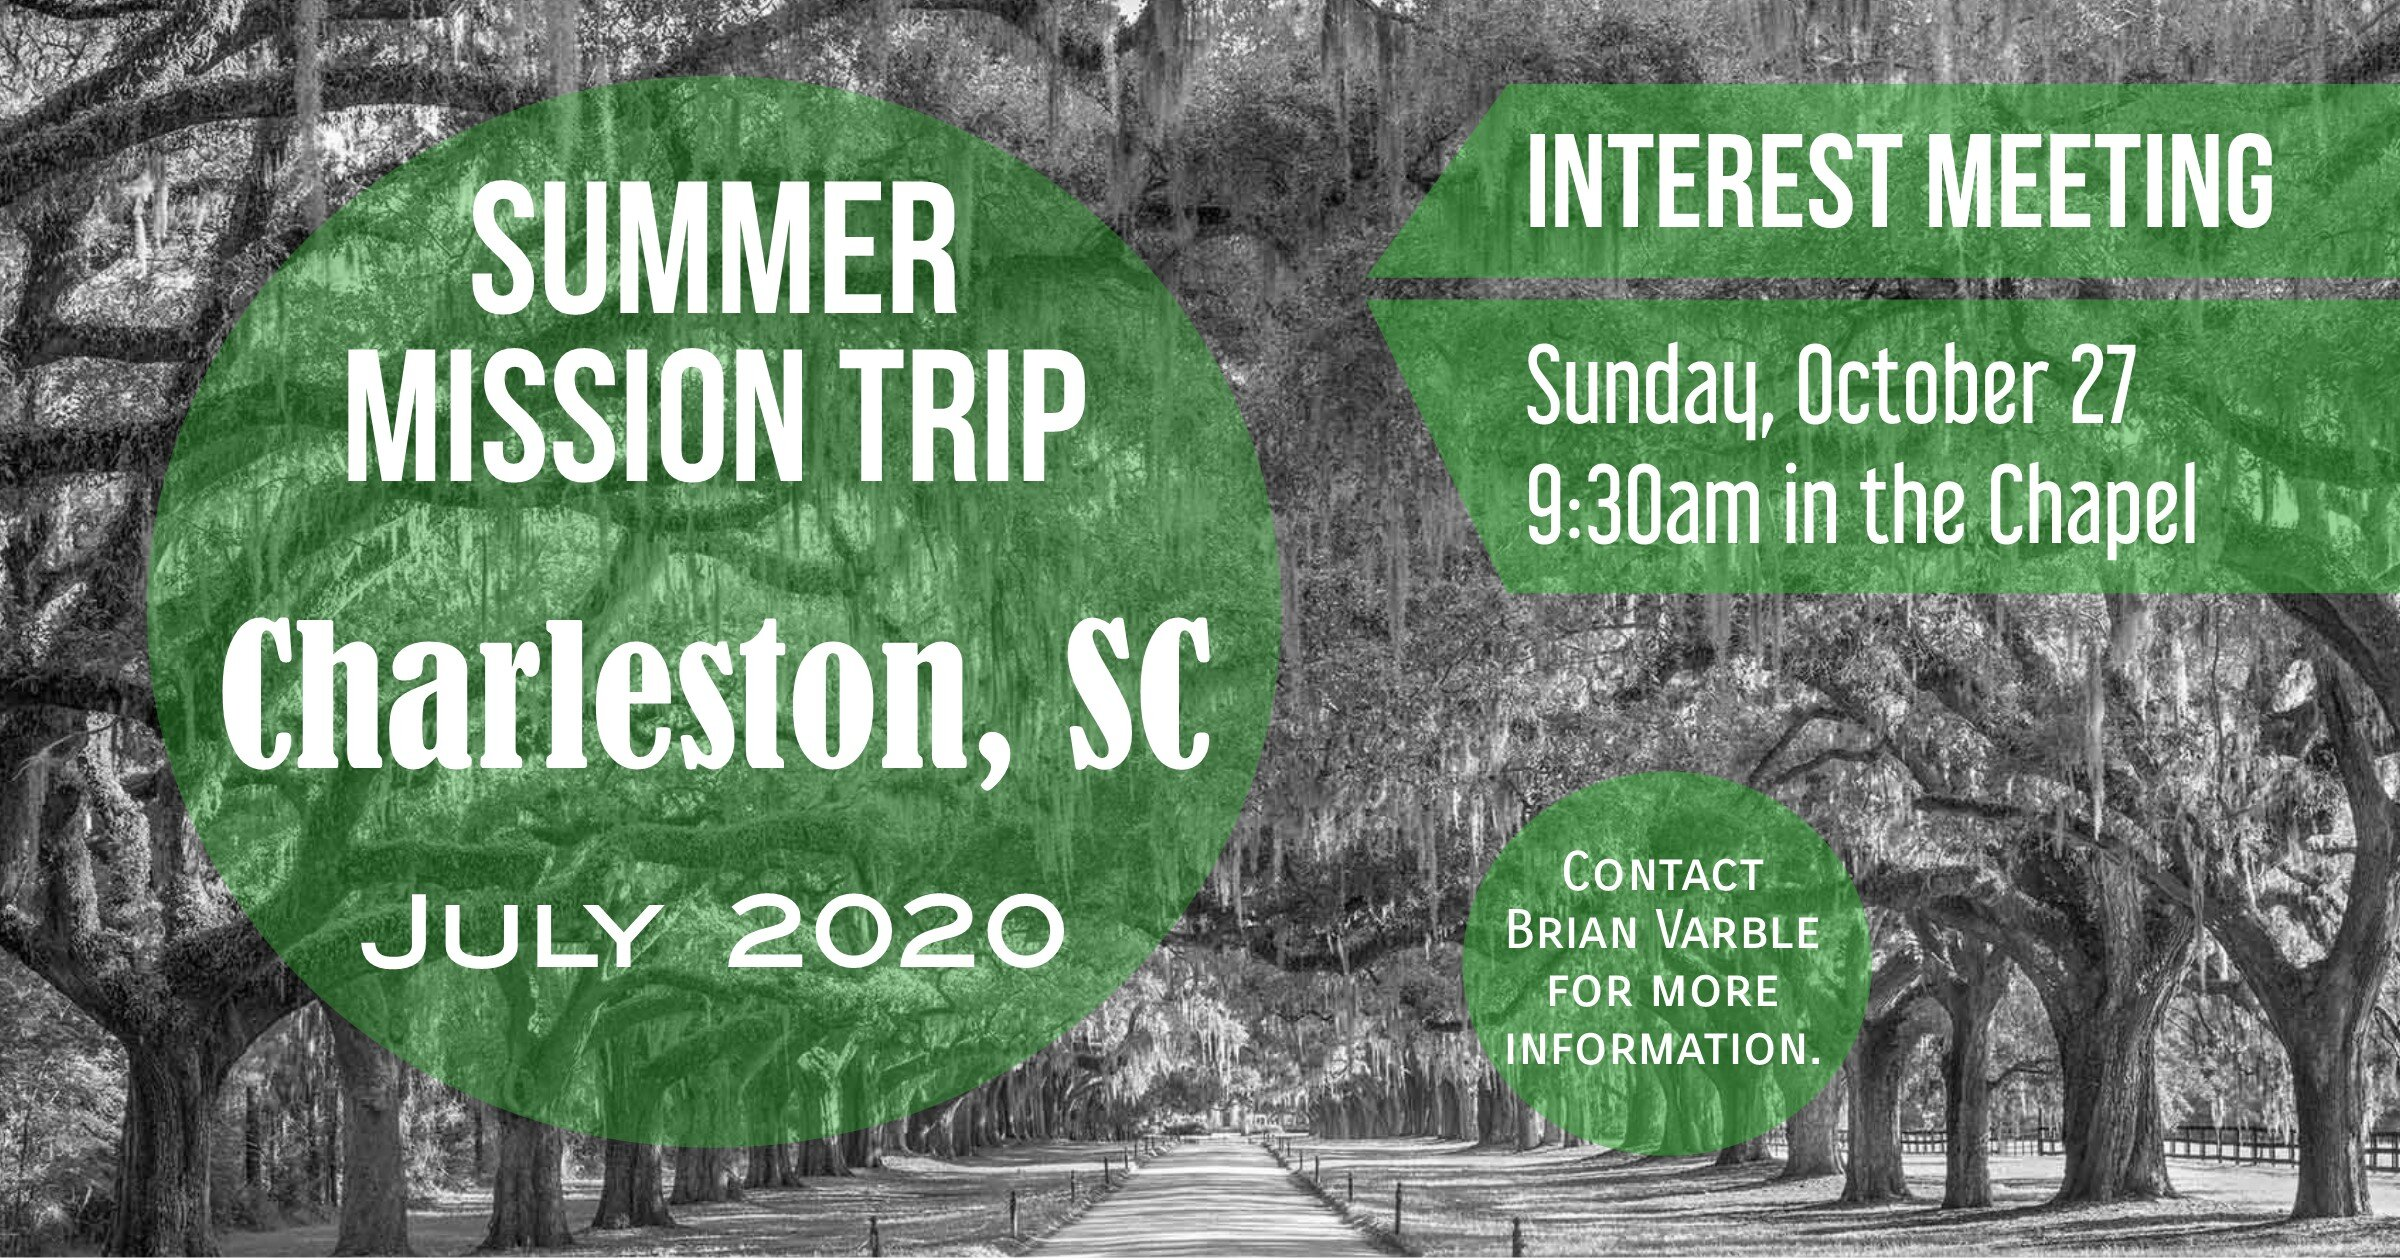 Charleston Mission Trip Interest Meeting fb.jpg